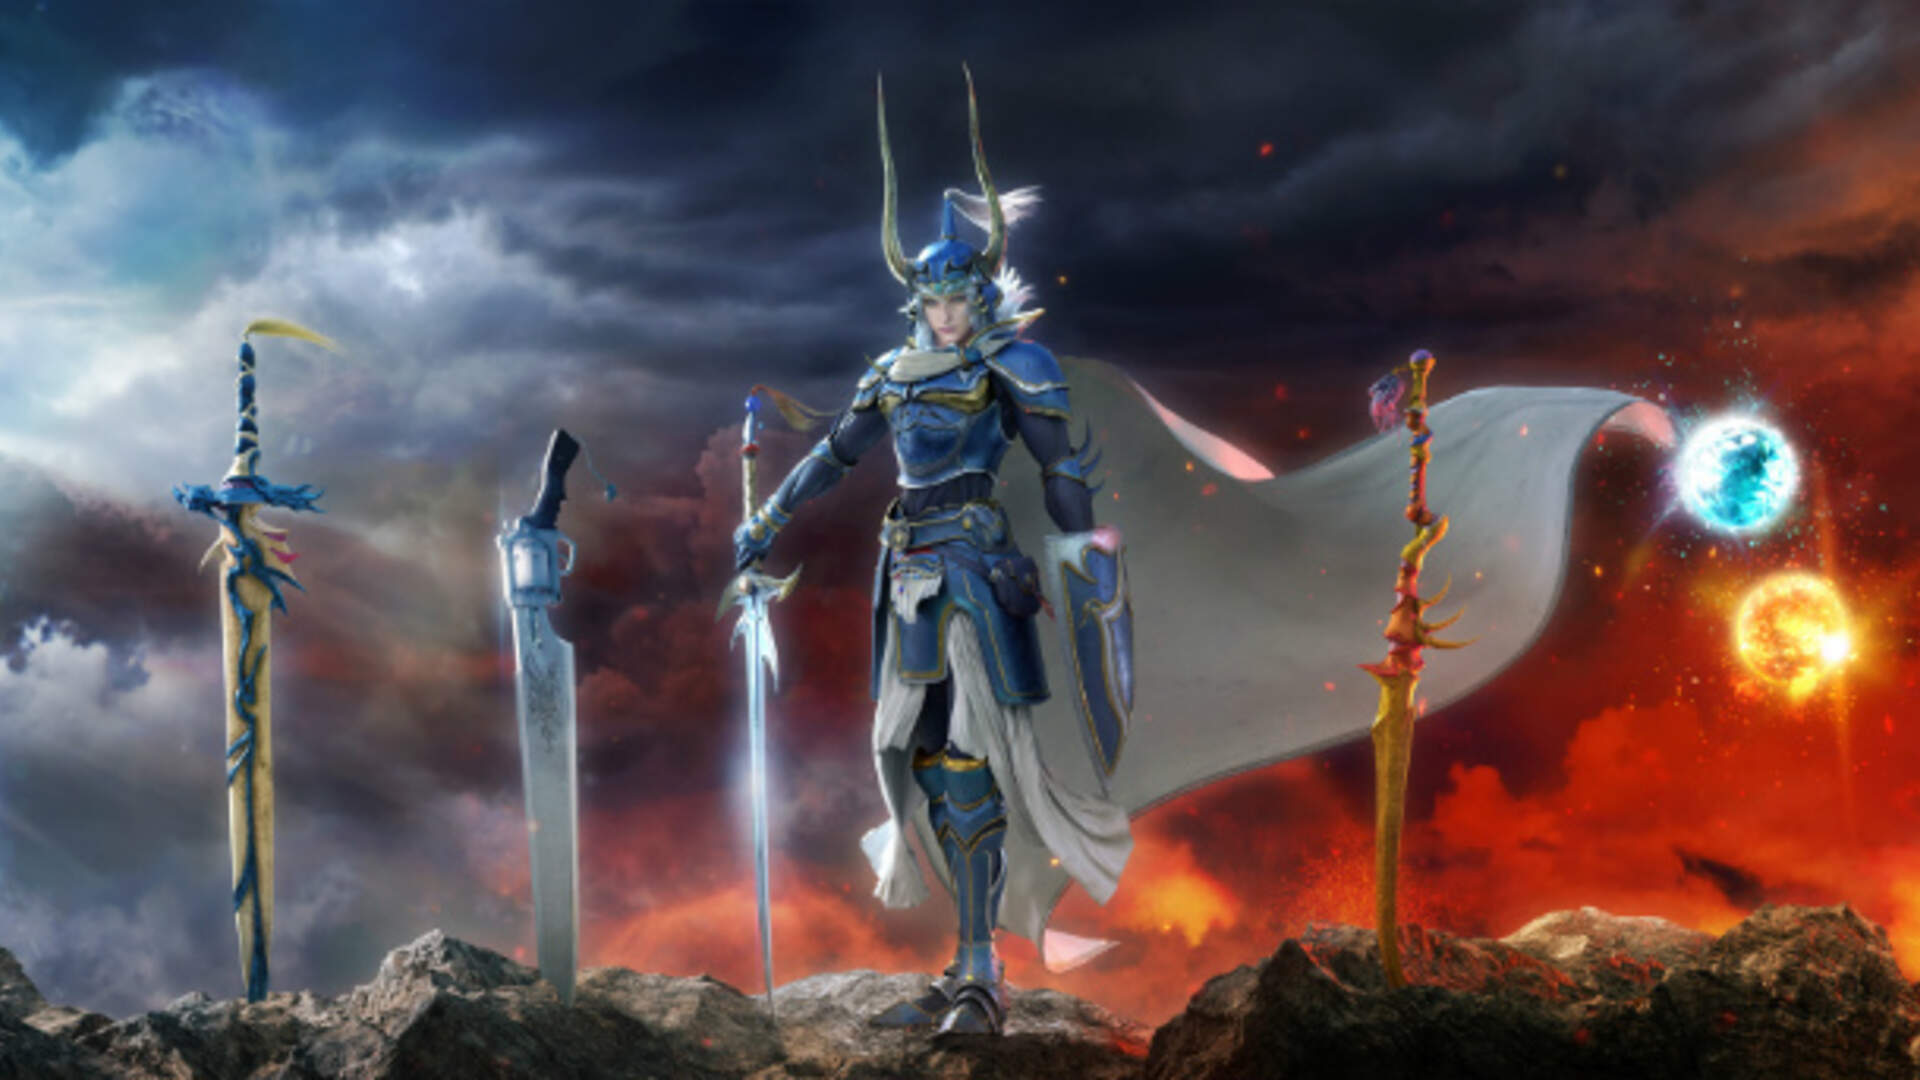 Dissidia Final Fantasy Nt Announces Closed Beta Test Sign Ups